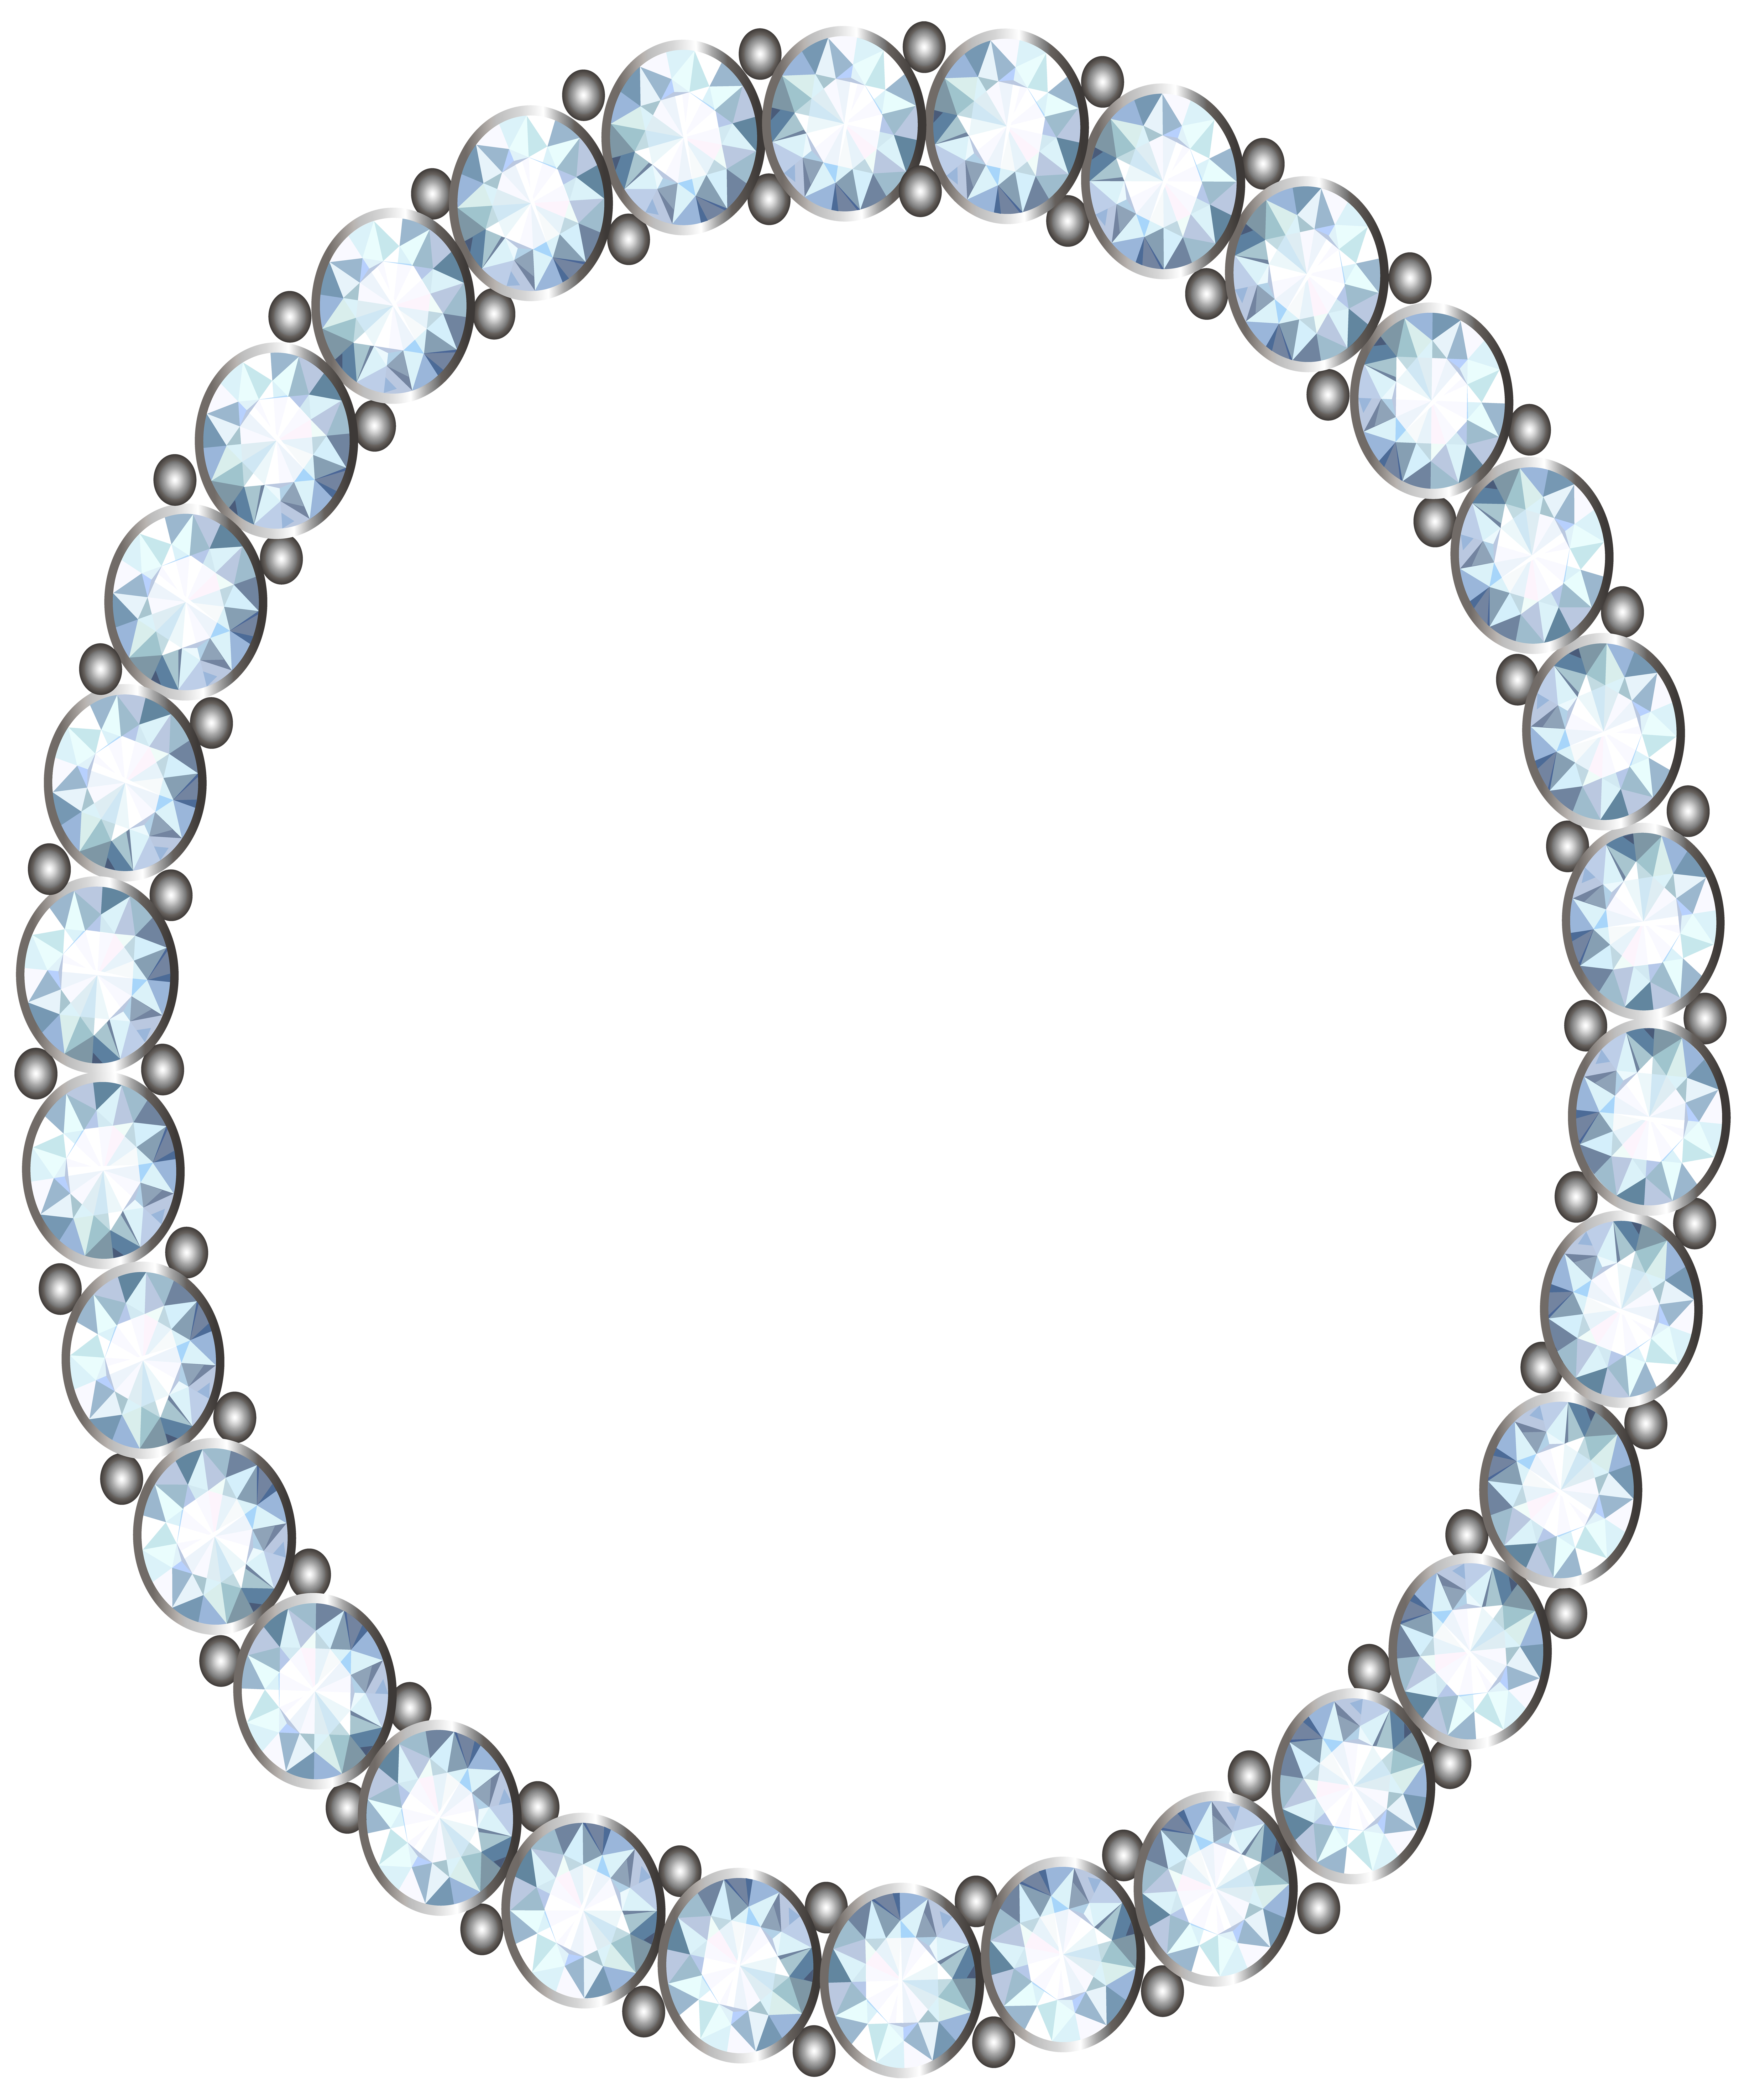 Diamond frame png. Clip art image gallery